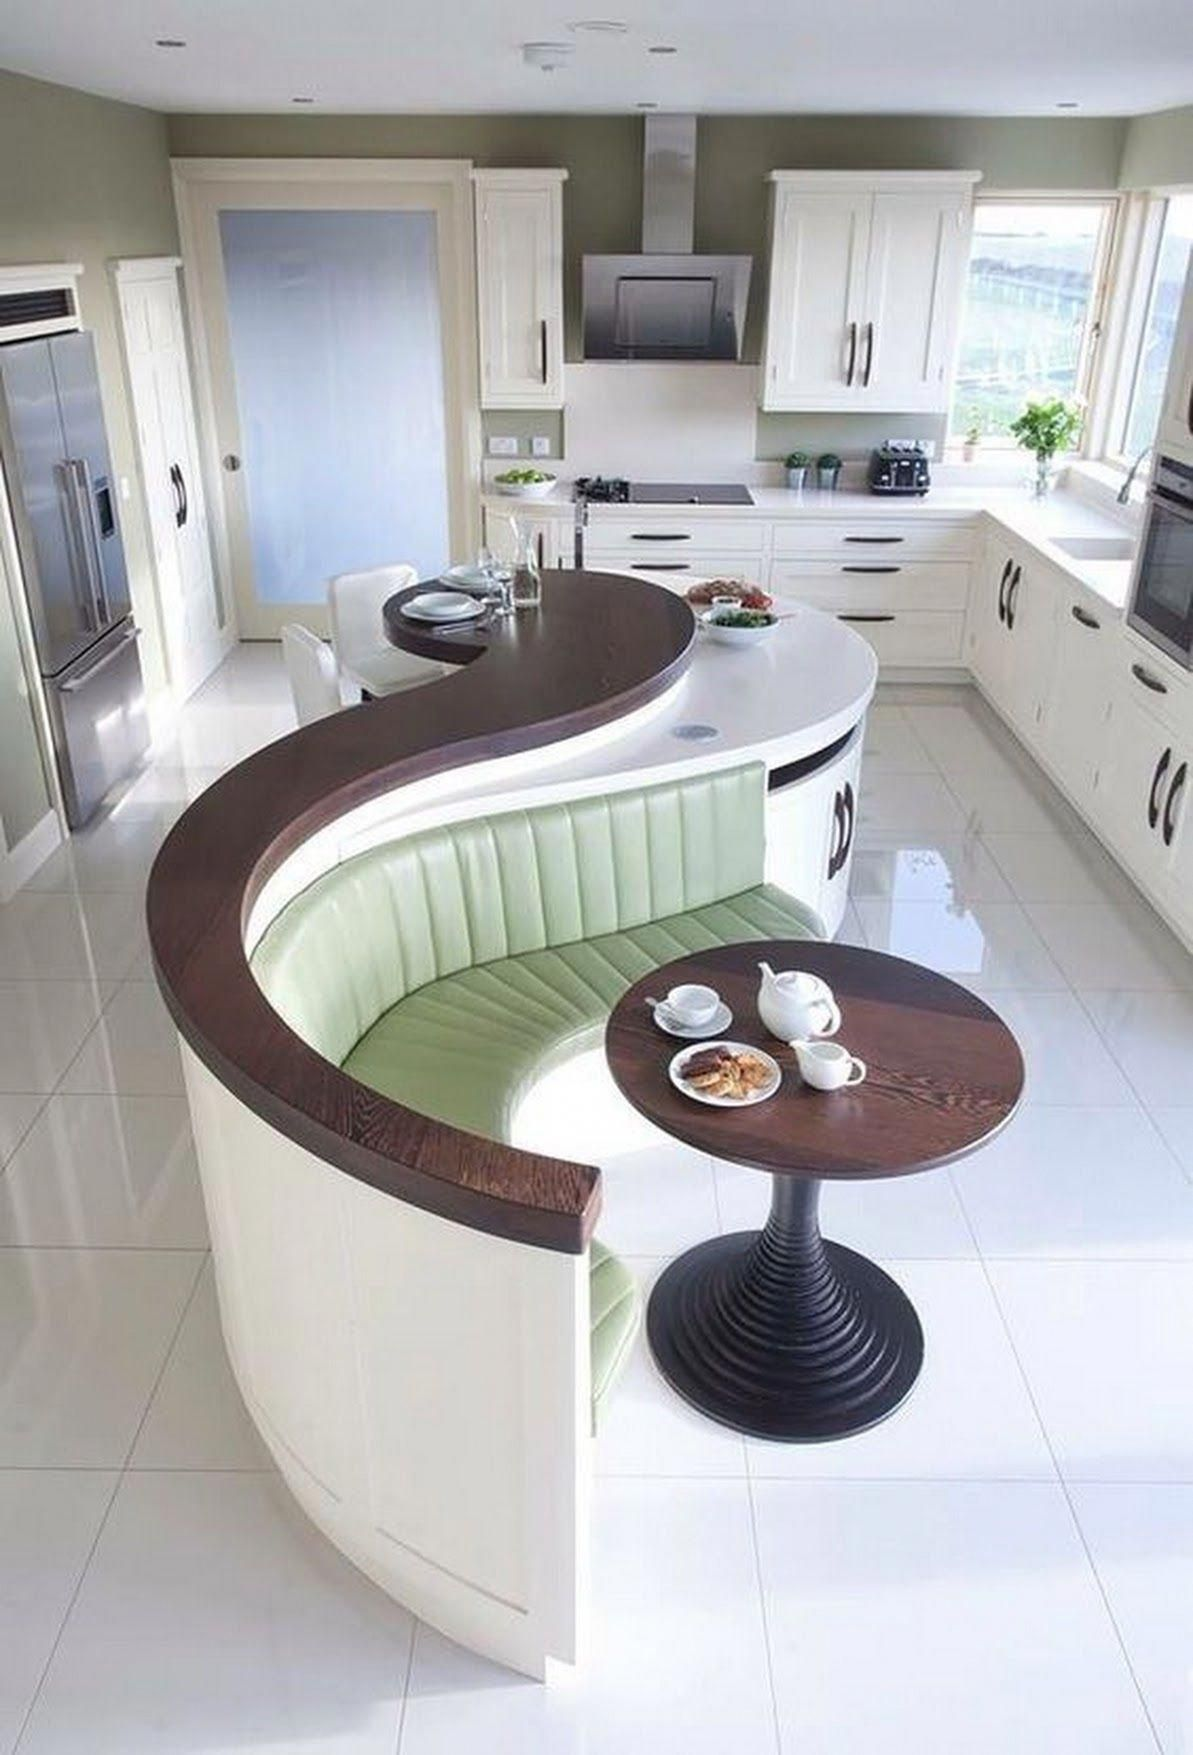 This Is A Very Unique Lovely Kitchen Design Different From The